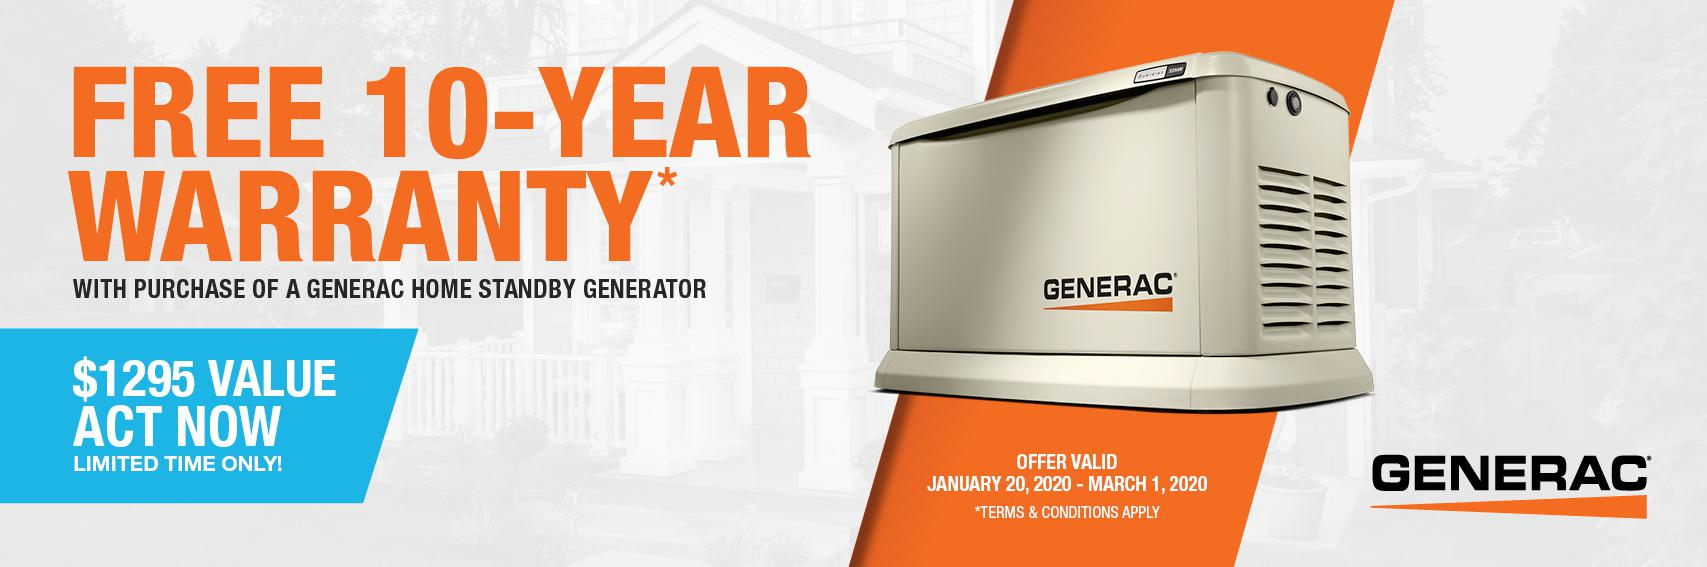 Homestandby Generator Deal | Warranty Offer | Generac Dealer | Barrie, ON